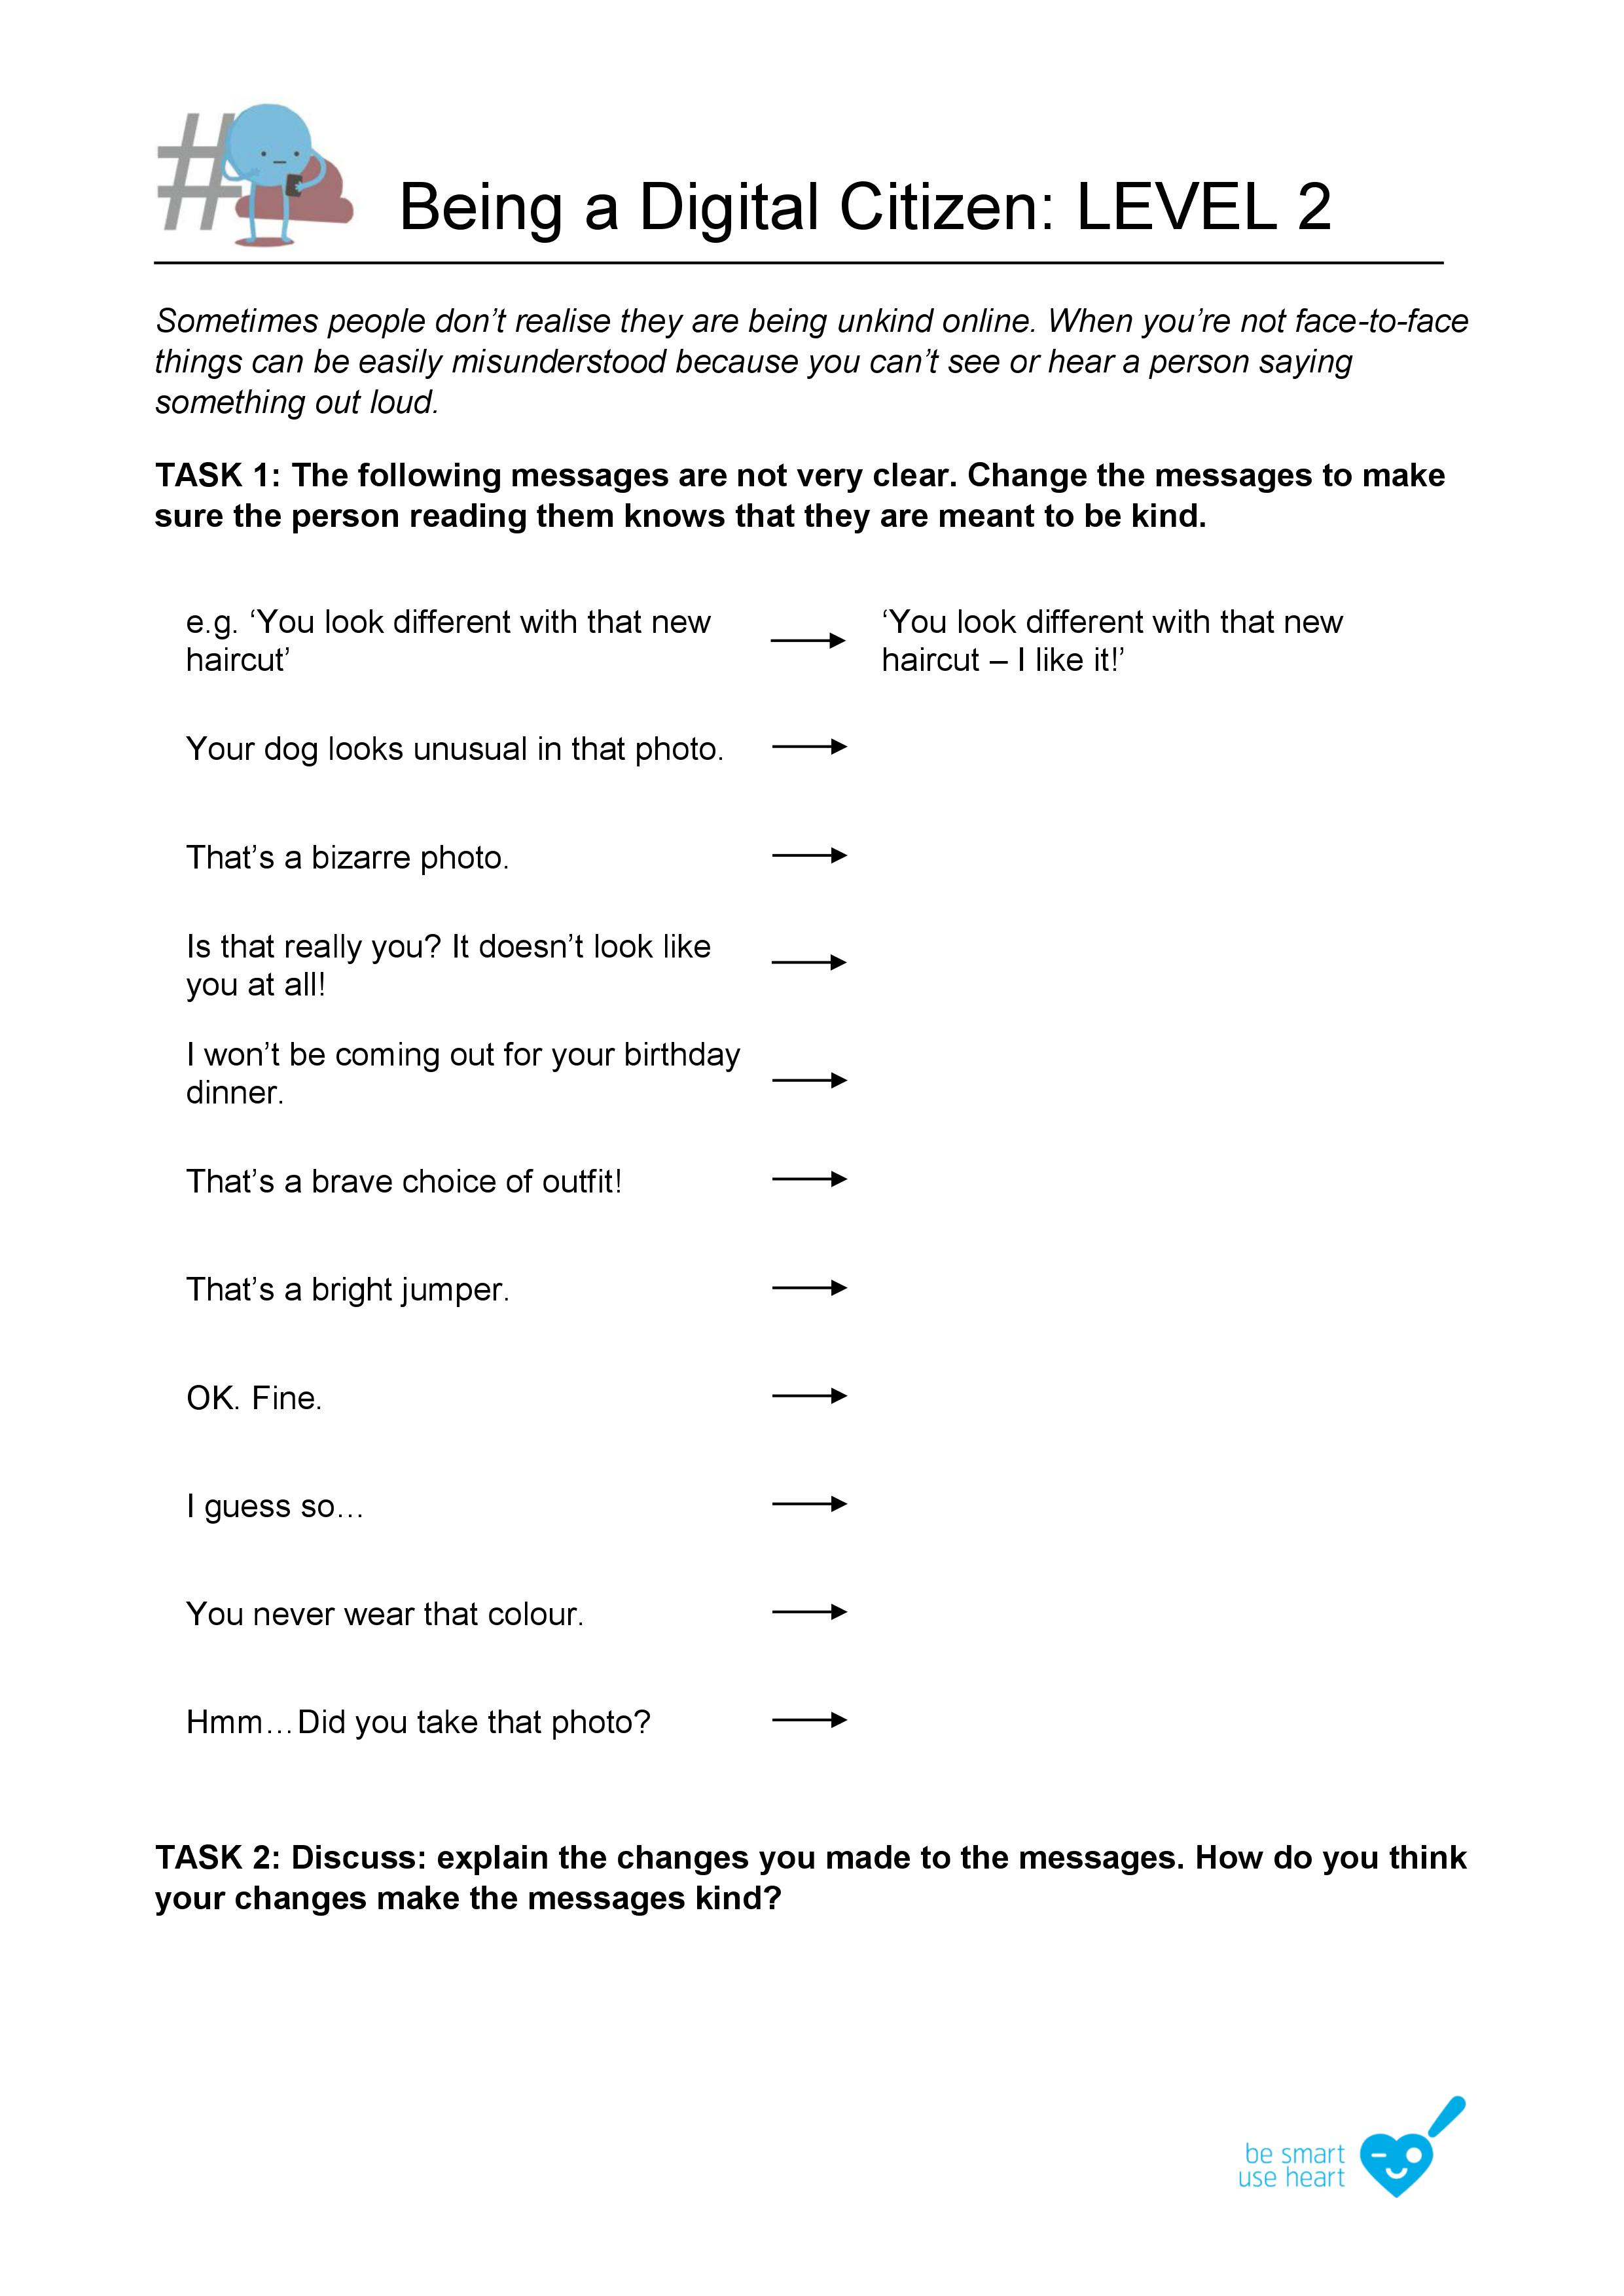 Level 2 Kindness Worksheet